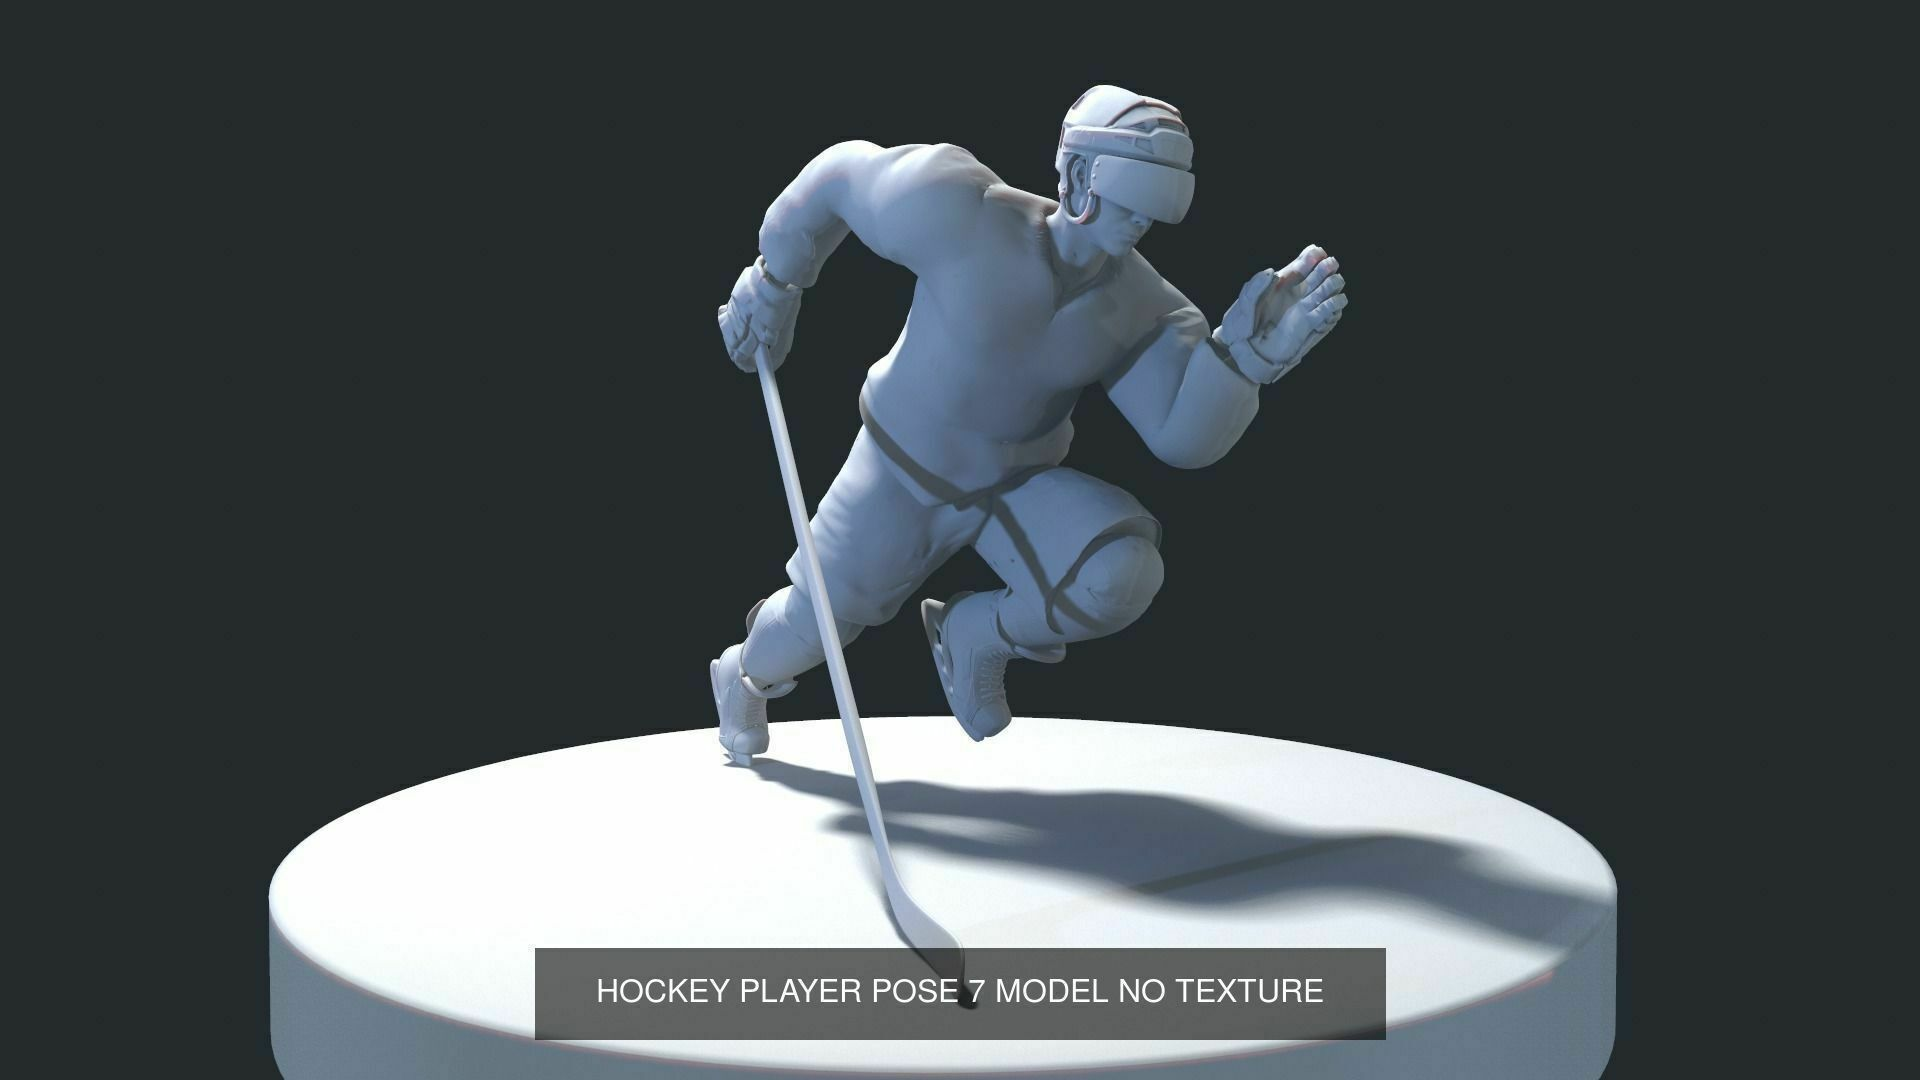 ultimate-hockey-poses-pack-model-no-texture-3d-model-max-obj-fbx-stl-tbscene (19).jpg Download OBJ file ULTIMATE HOCKEY POSES PACK MODEL NO TEXTURE 3D Model Collection • 3D printing template, NightCreativity